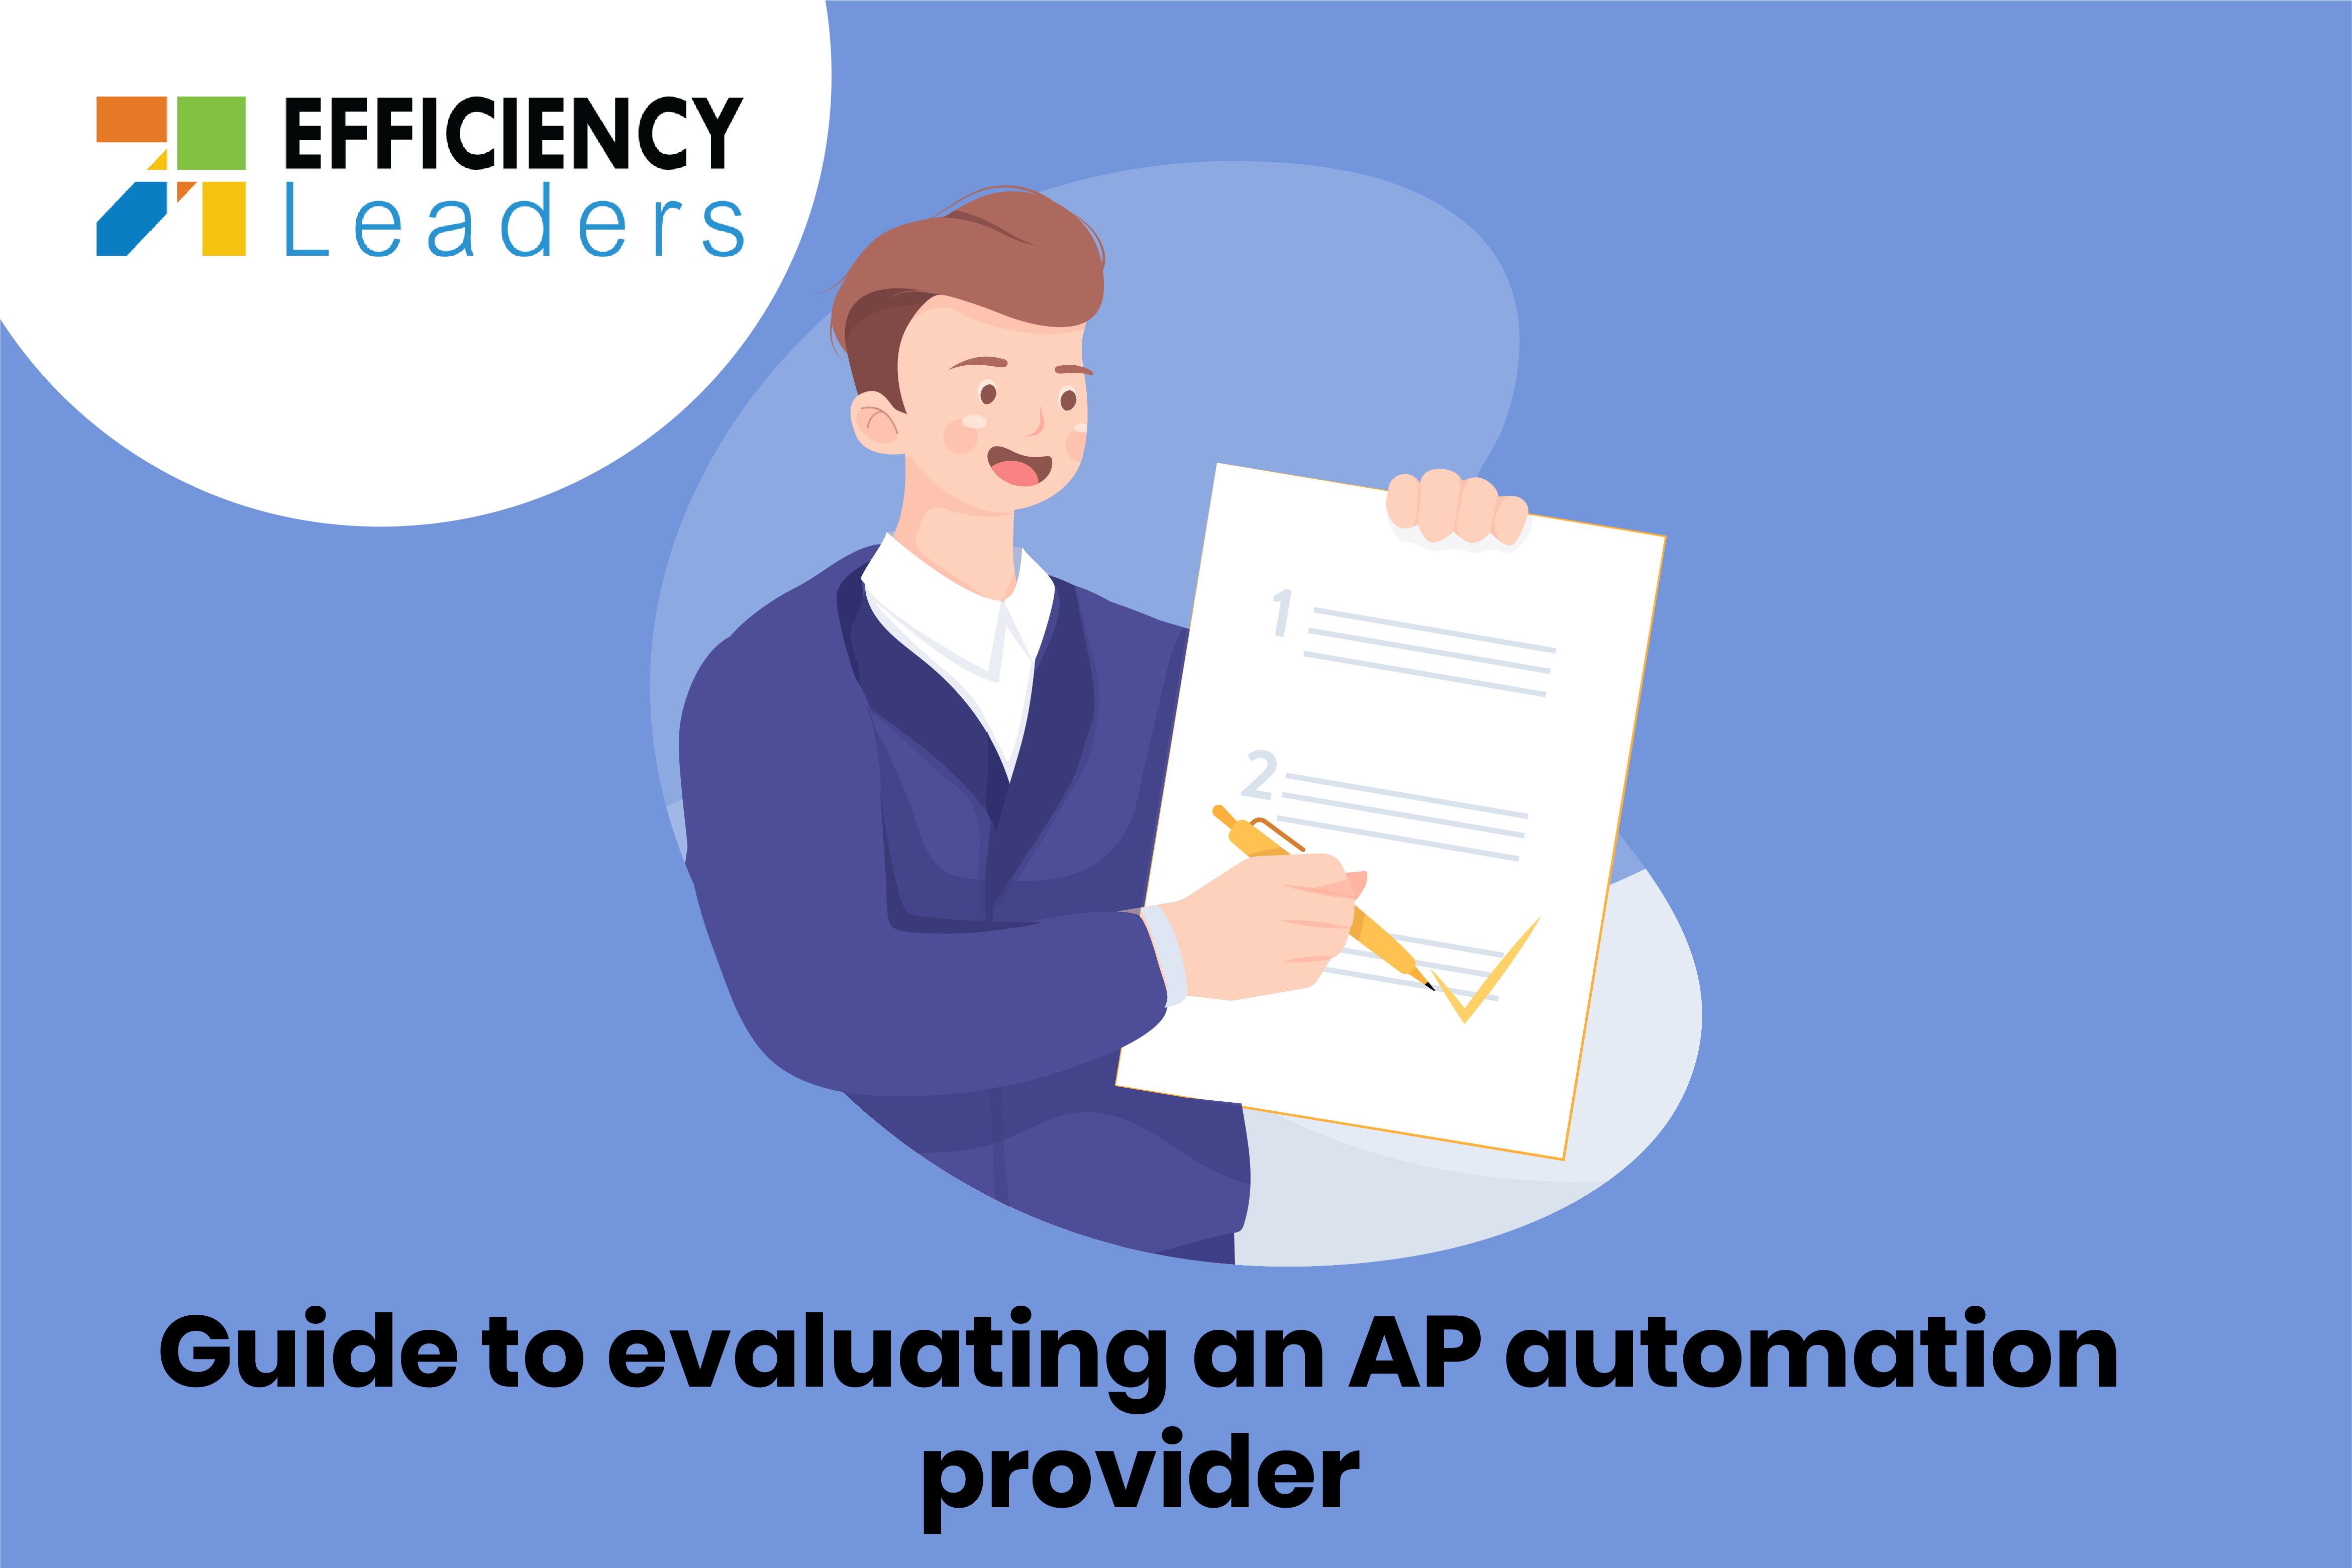 Guide to evaluating an AP automation provider